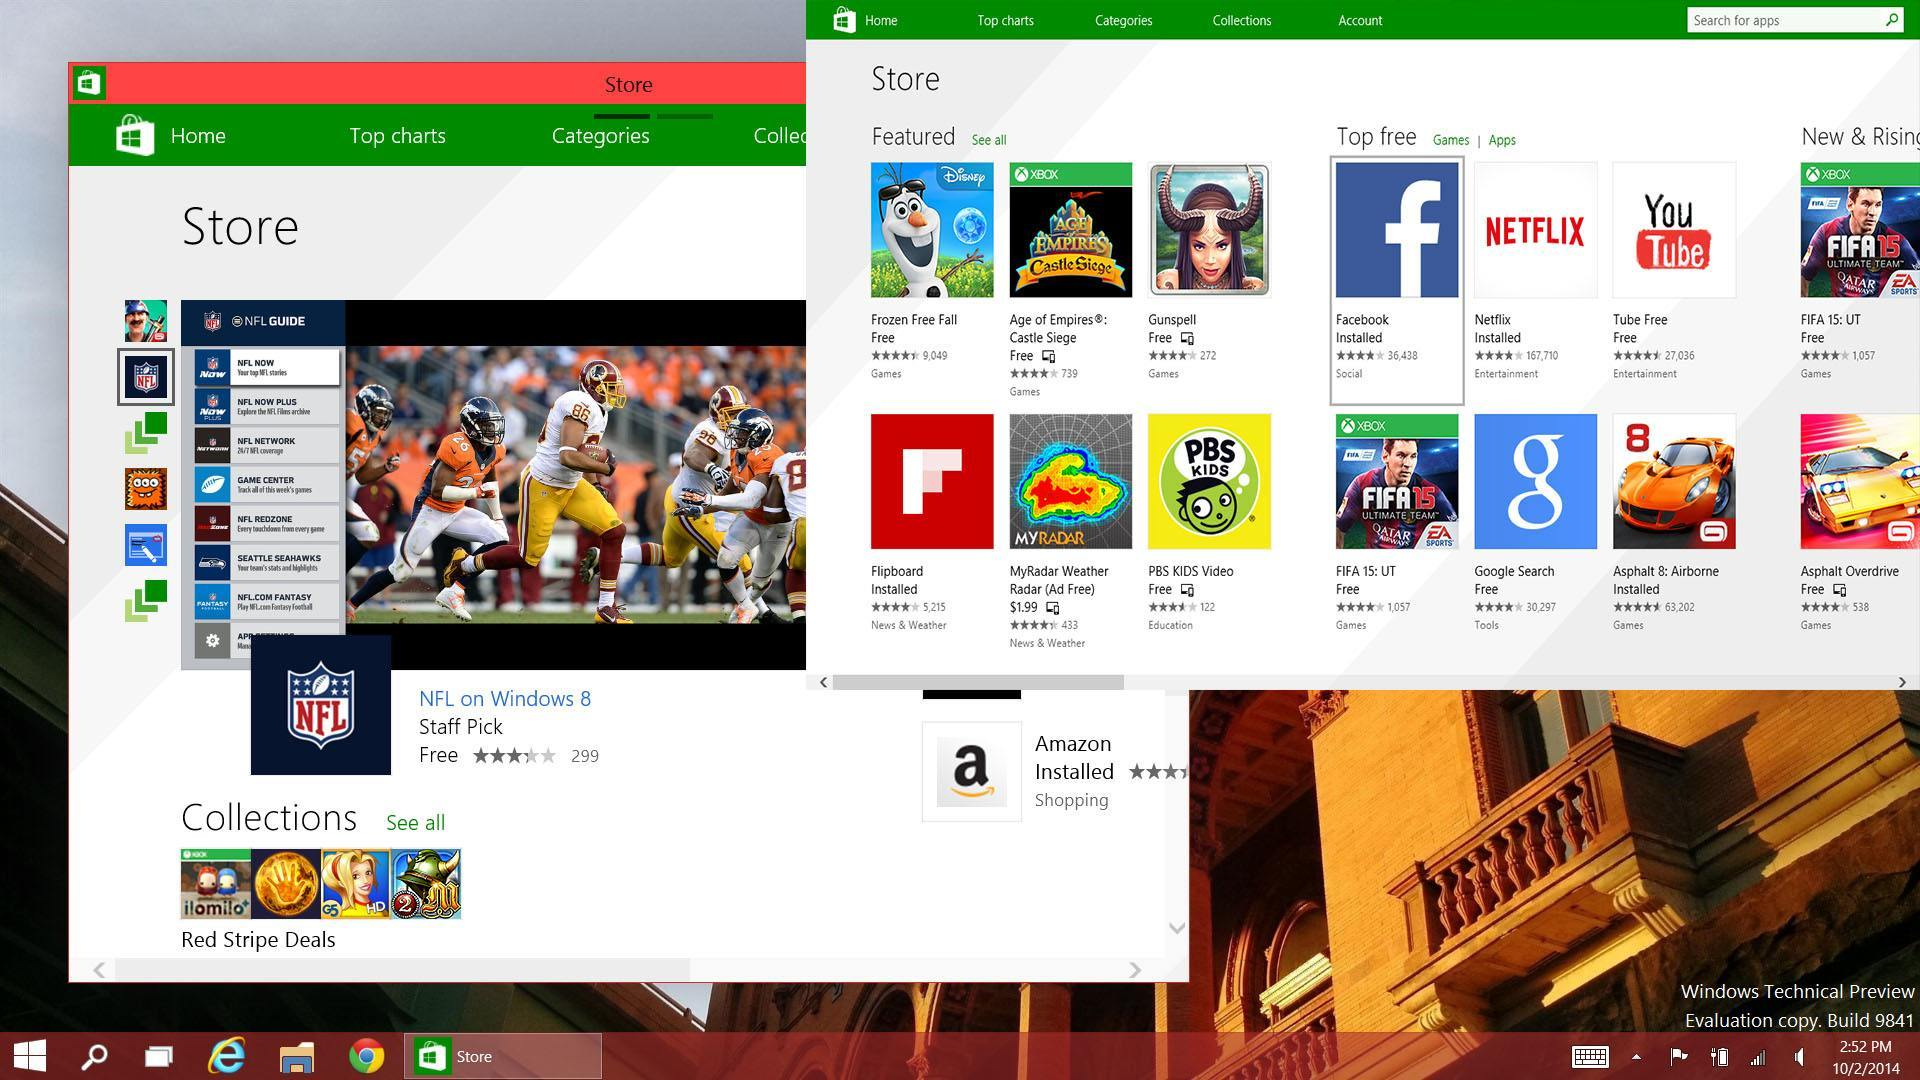 new microsoft windows 10 store aims to unify pc apps and